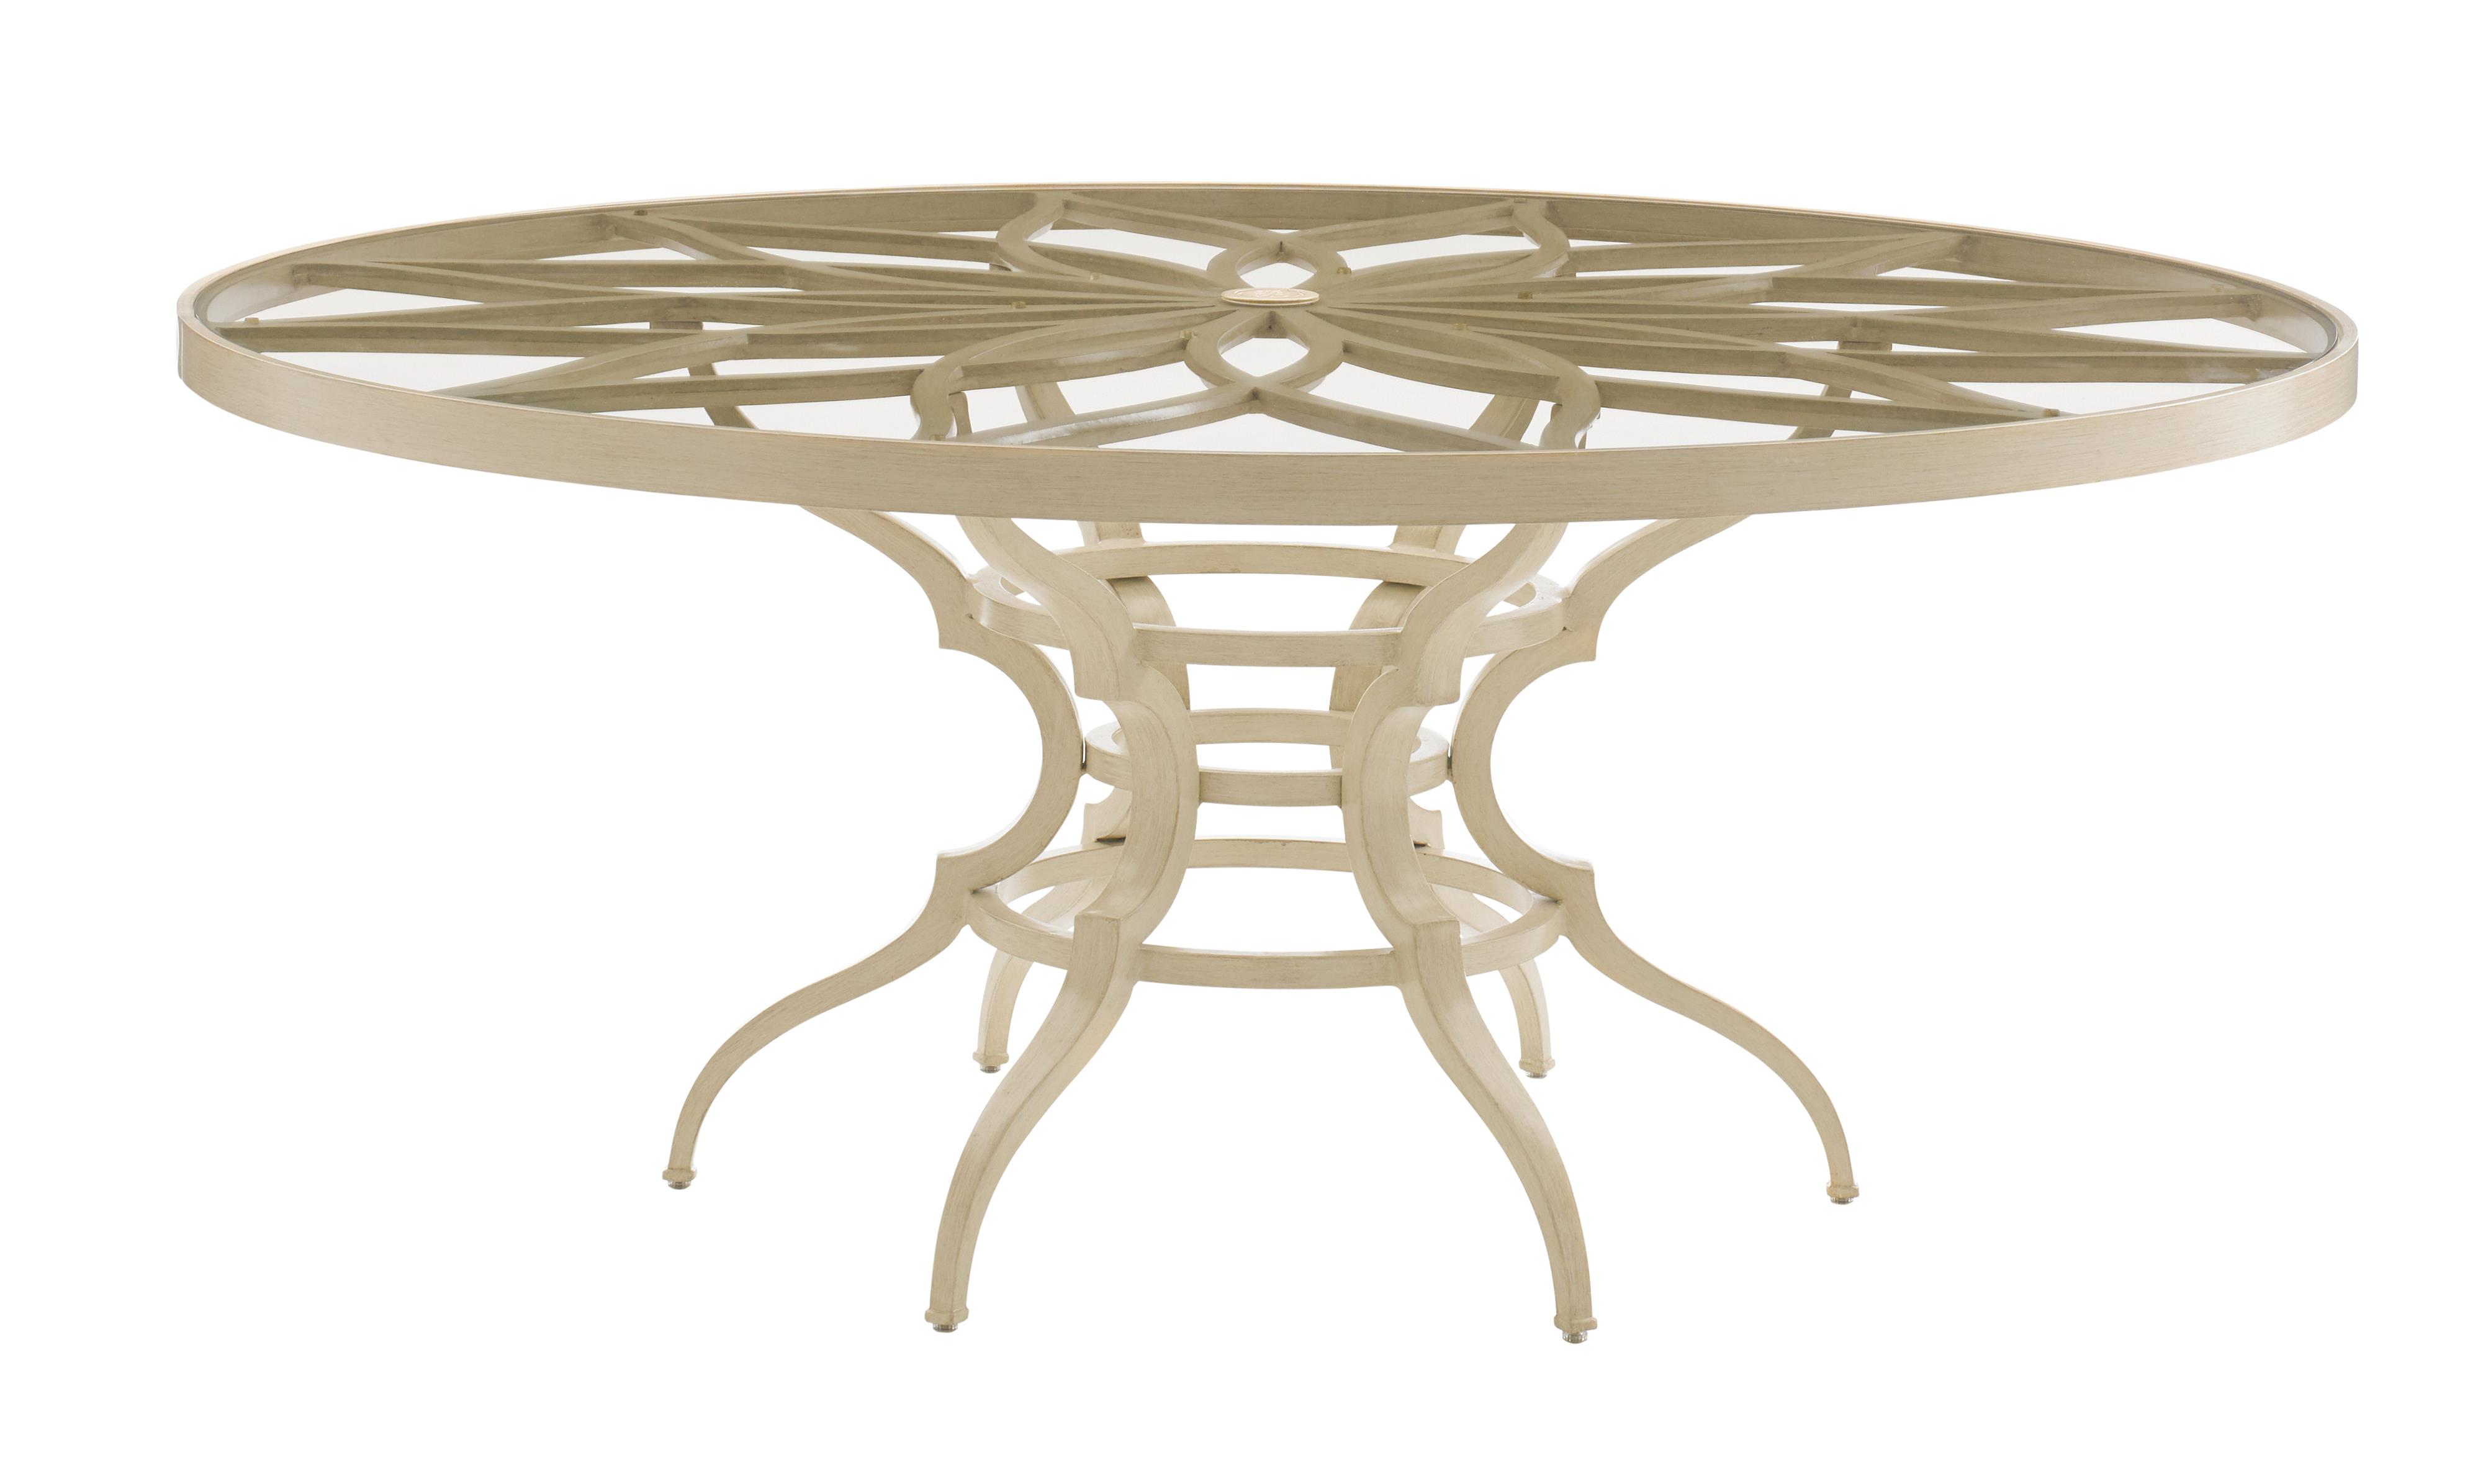 Misty Garden Round Dining Table w/ Glass Top by Tommy Bahama Outdoor Living at Baer's Furniture